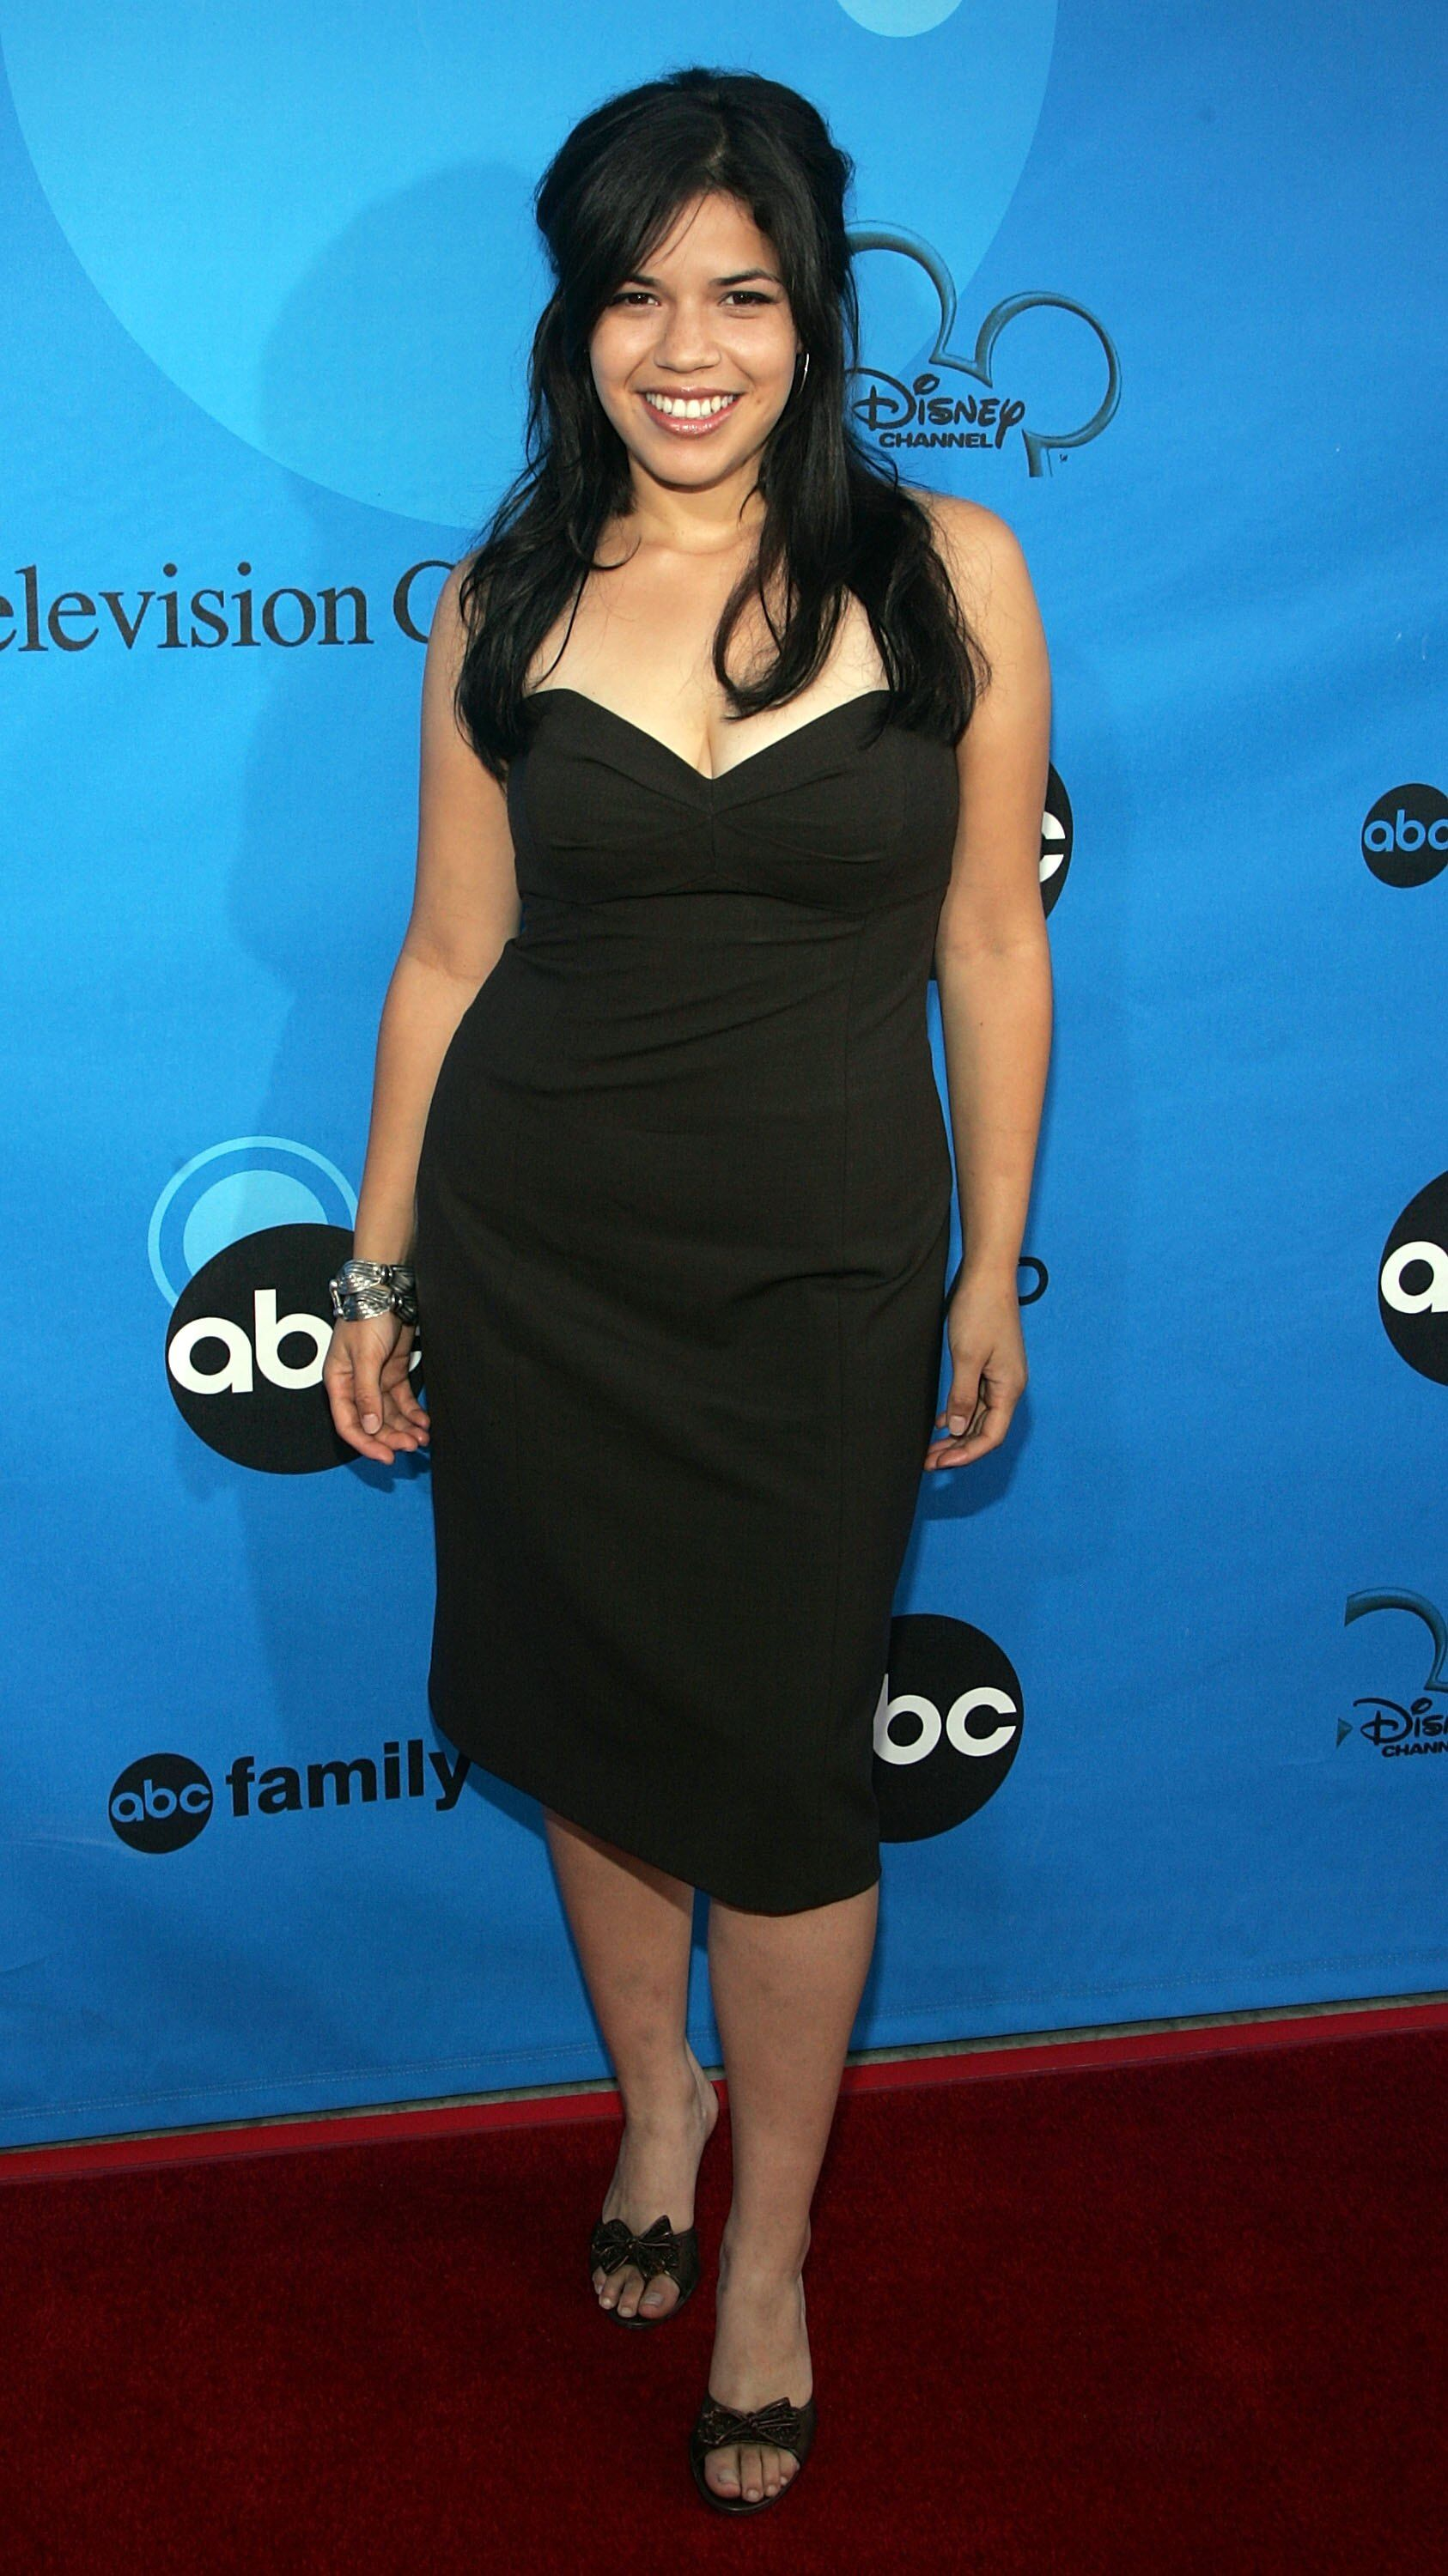 America Ferrera arrives to the Disney - ABC Television Group All Star Party. | Source: Getty Images